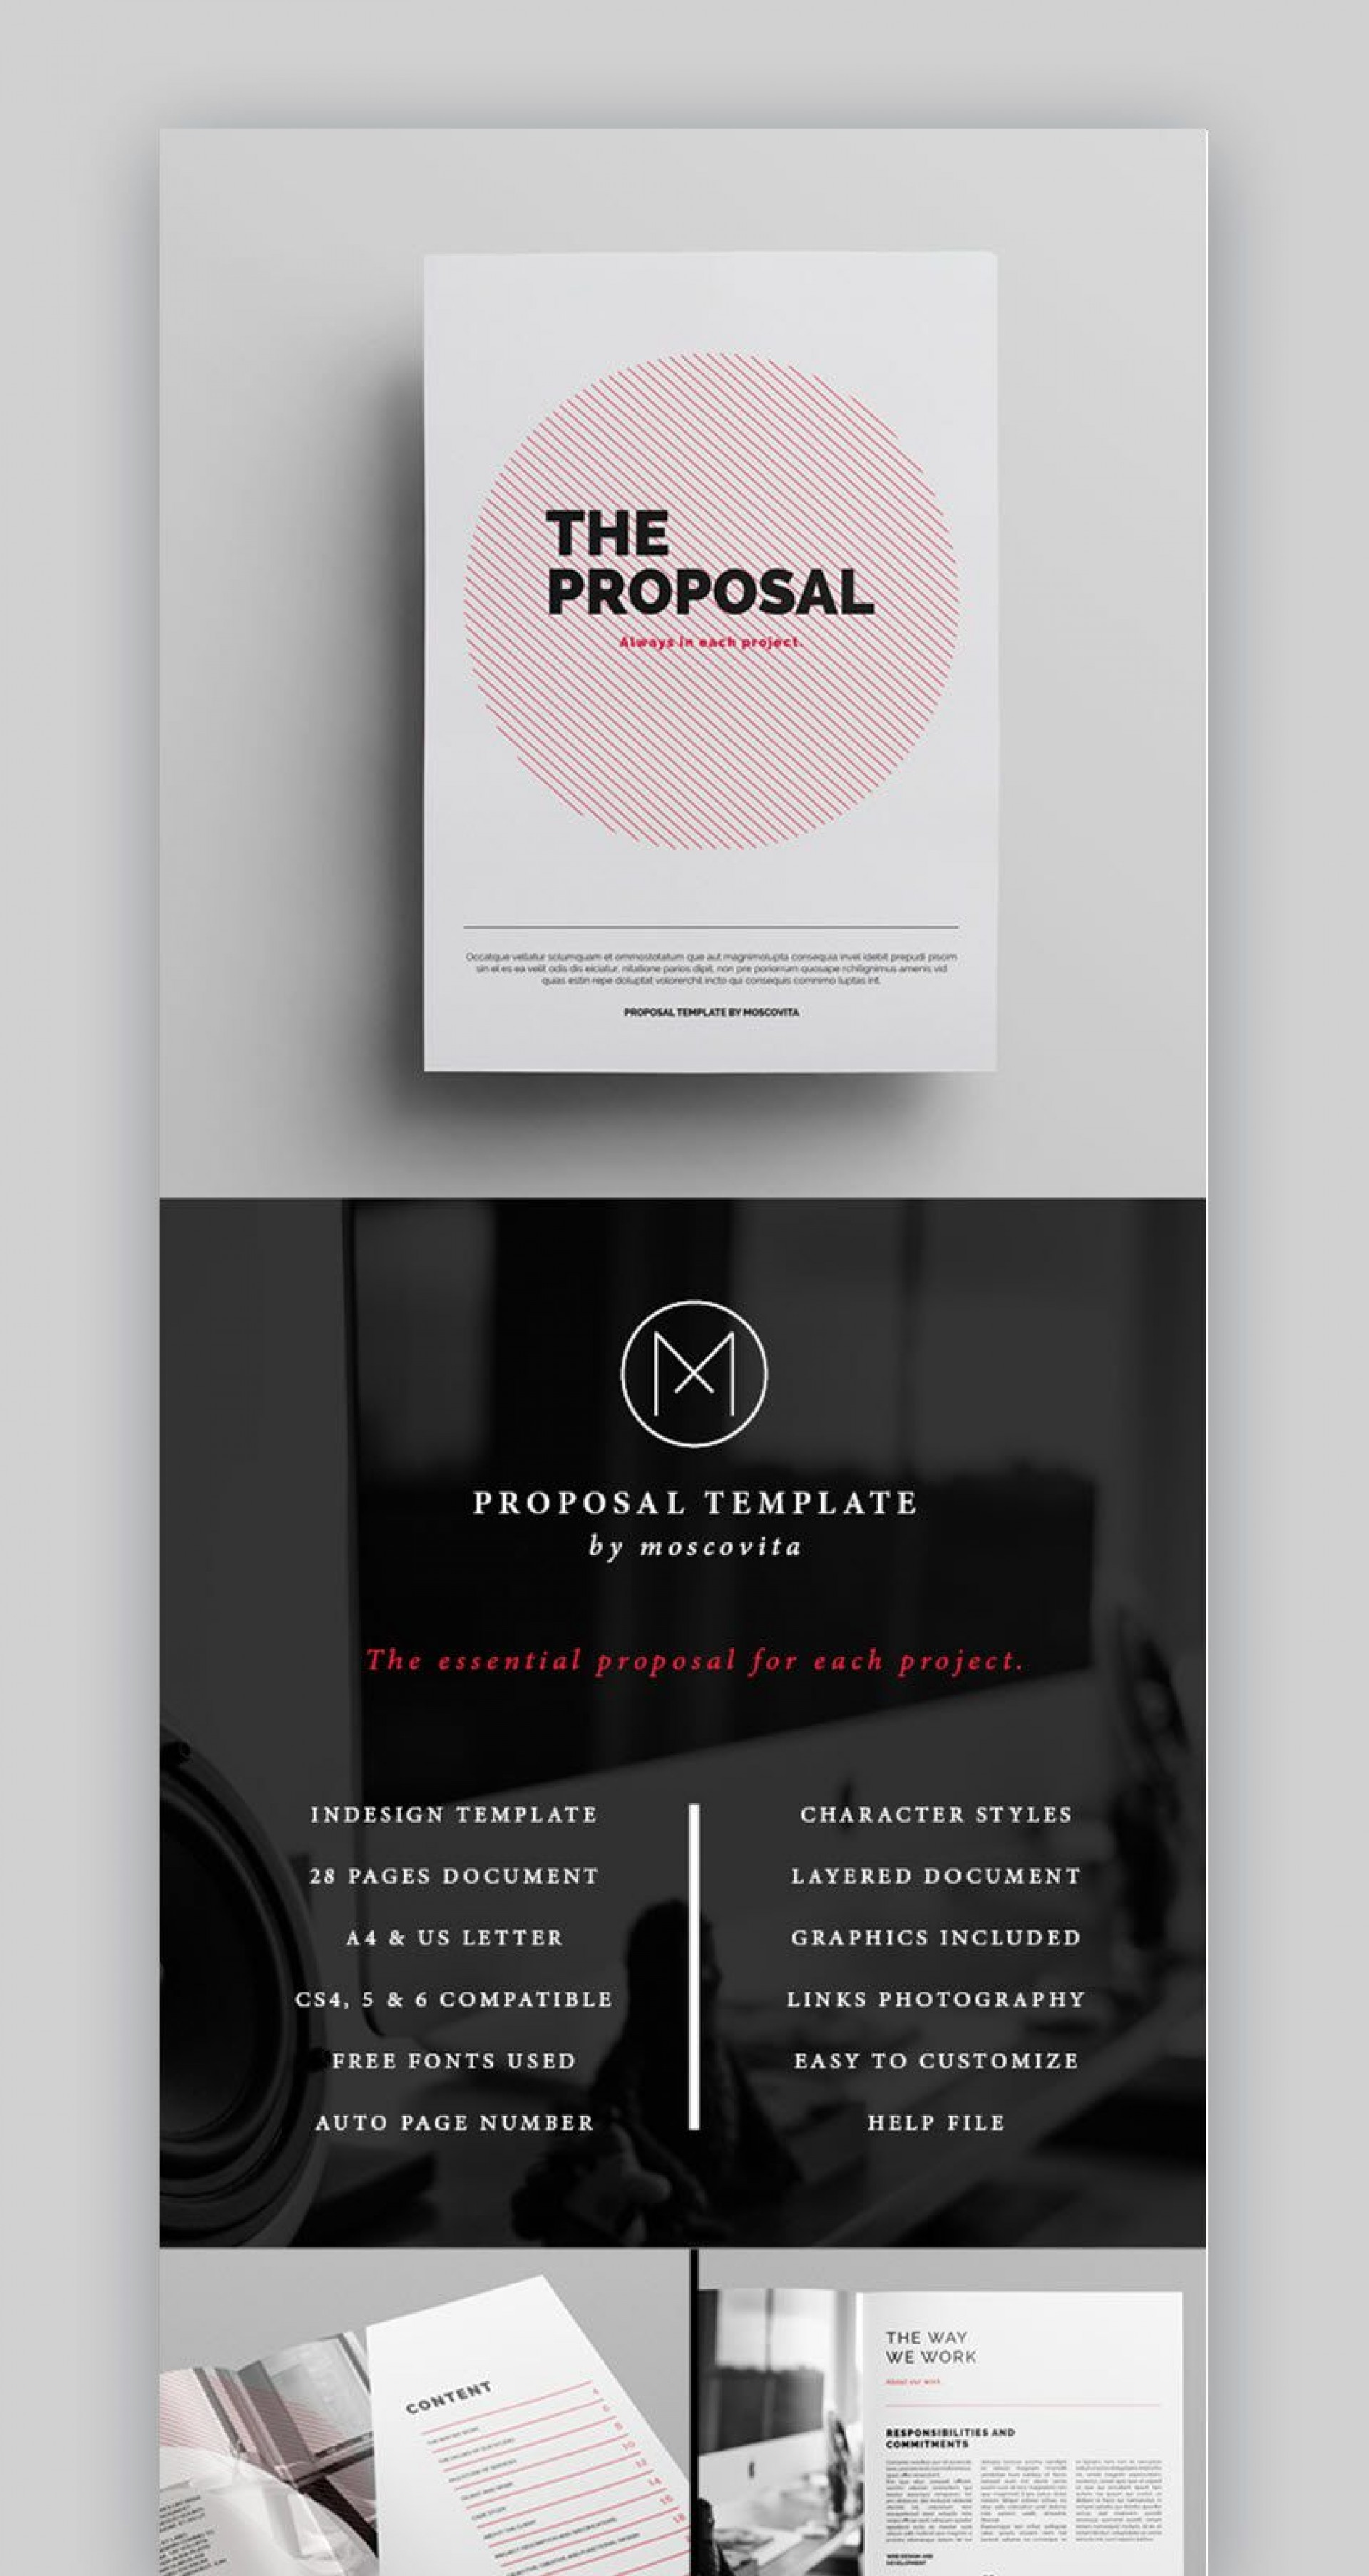 005 Frightening Web Design Proposal Template Free Download High Def 1920